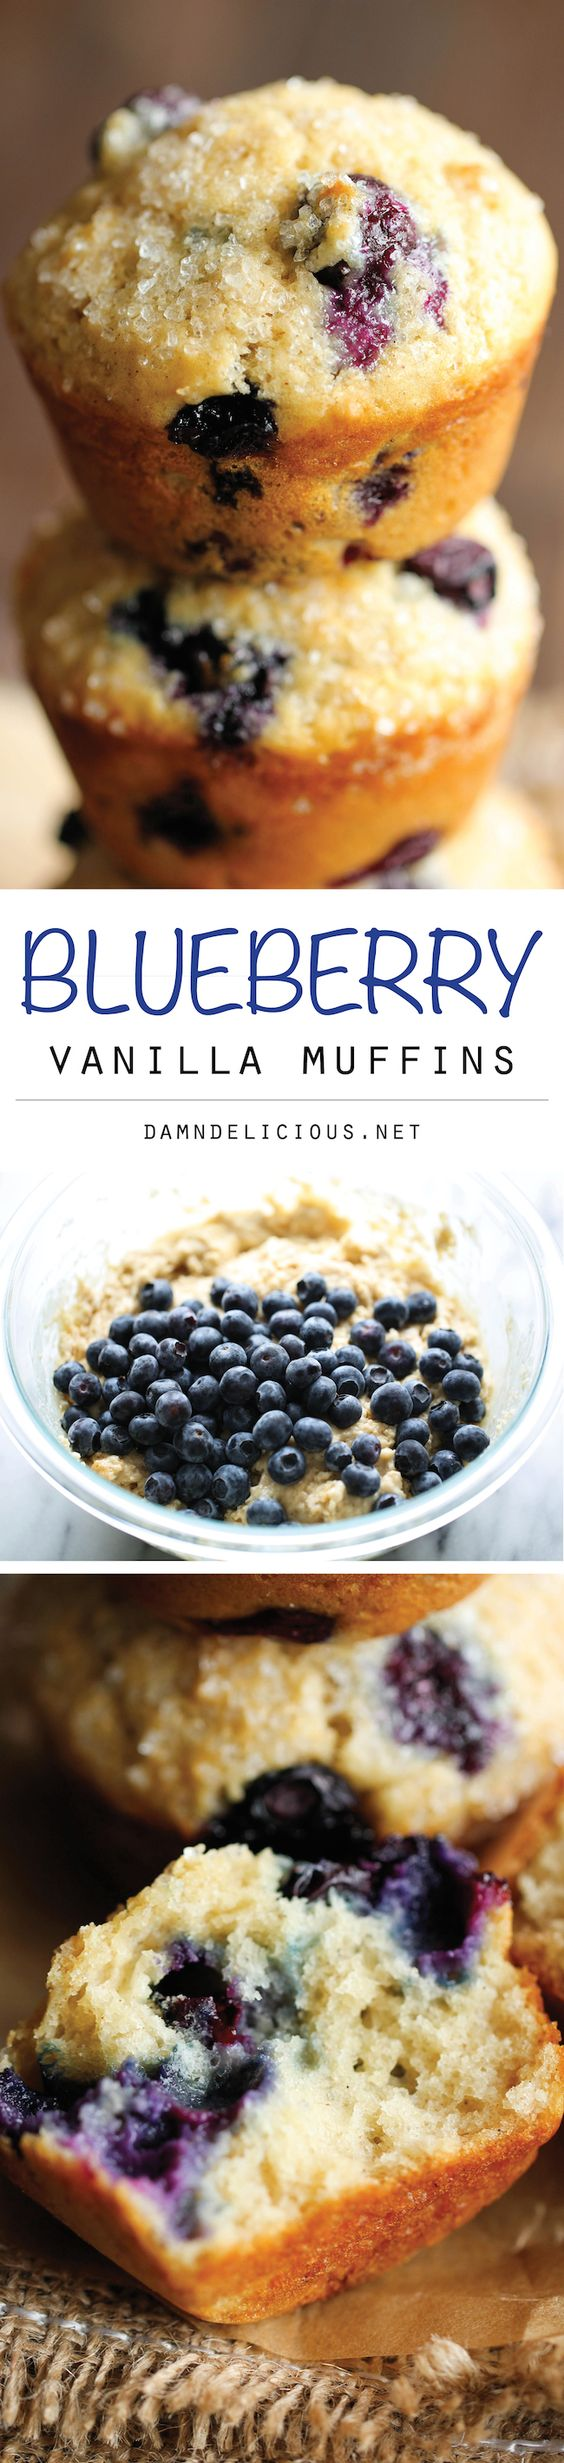 Blueberry Vanilla Muffins - These light and airy muffins are the perfect way to start your mornings, loaded with plump, juicy blueberries and extra vanilla goodness!